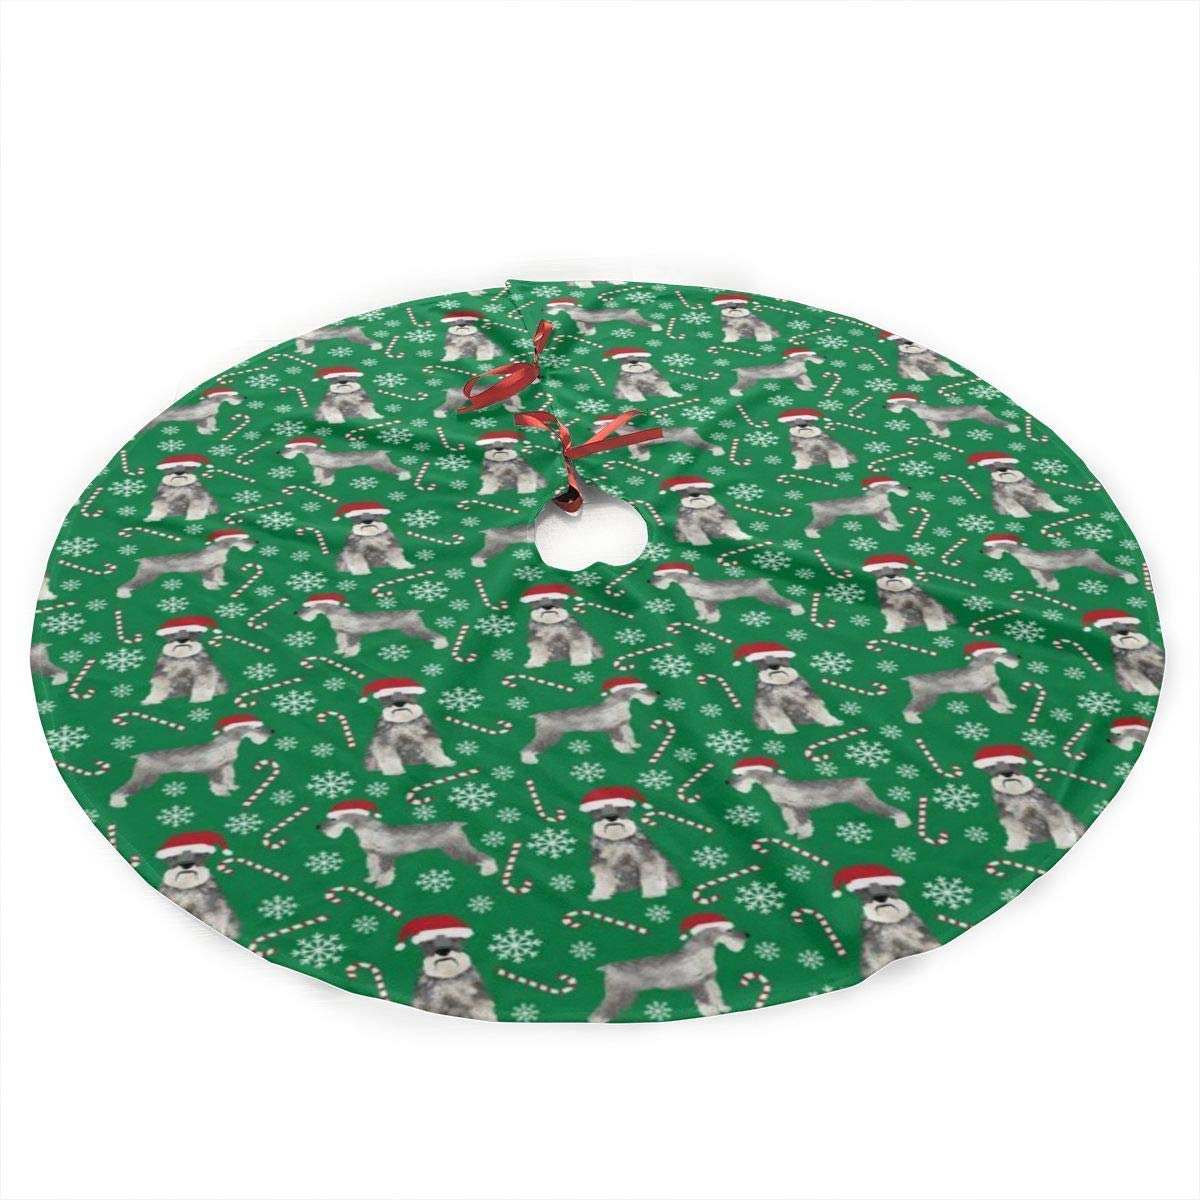 Boutique 9 Schnauzer Christmas Christmas Tree Skirts,Large Round Tassel Xmas Tree Skirt Mat for Christmas Decorations, Xmas Party Holiday Ornaments